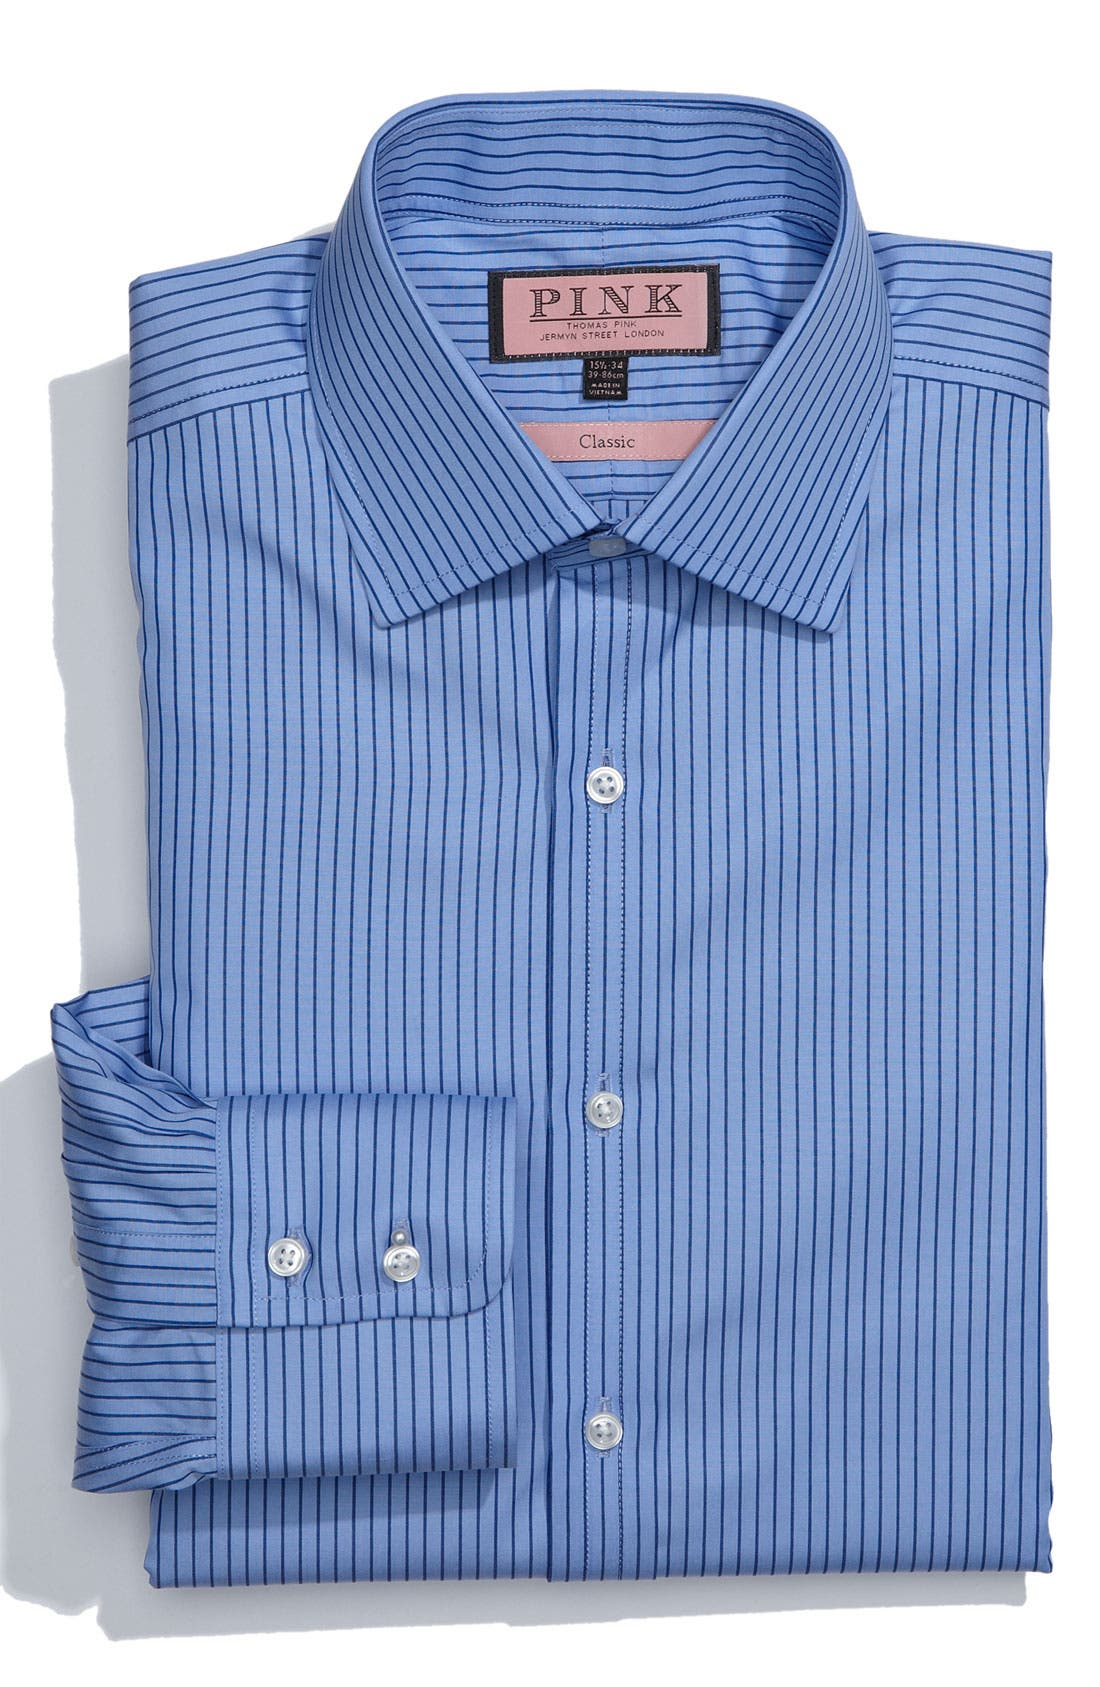 Alternate Image 1 Selected - Thomas Pink Classic Fit Dress Shirt